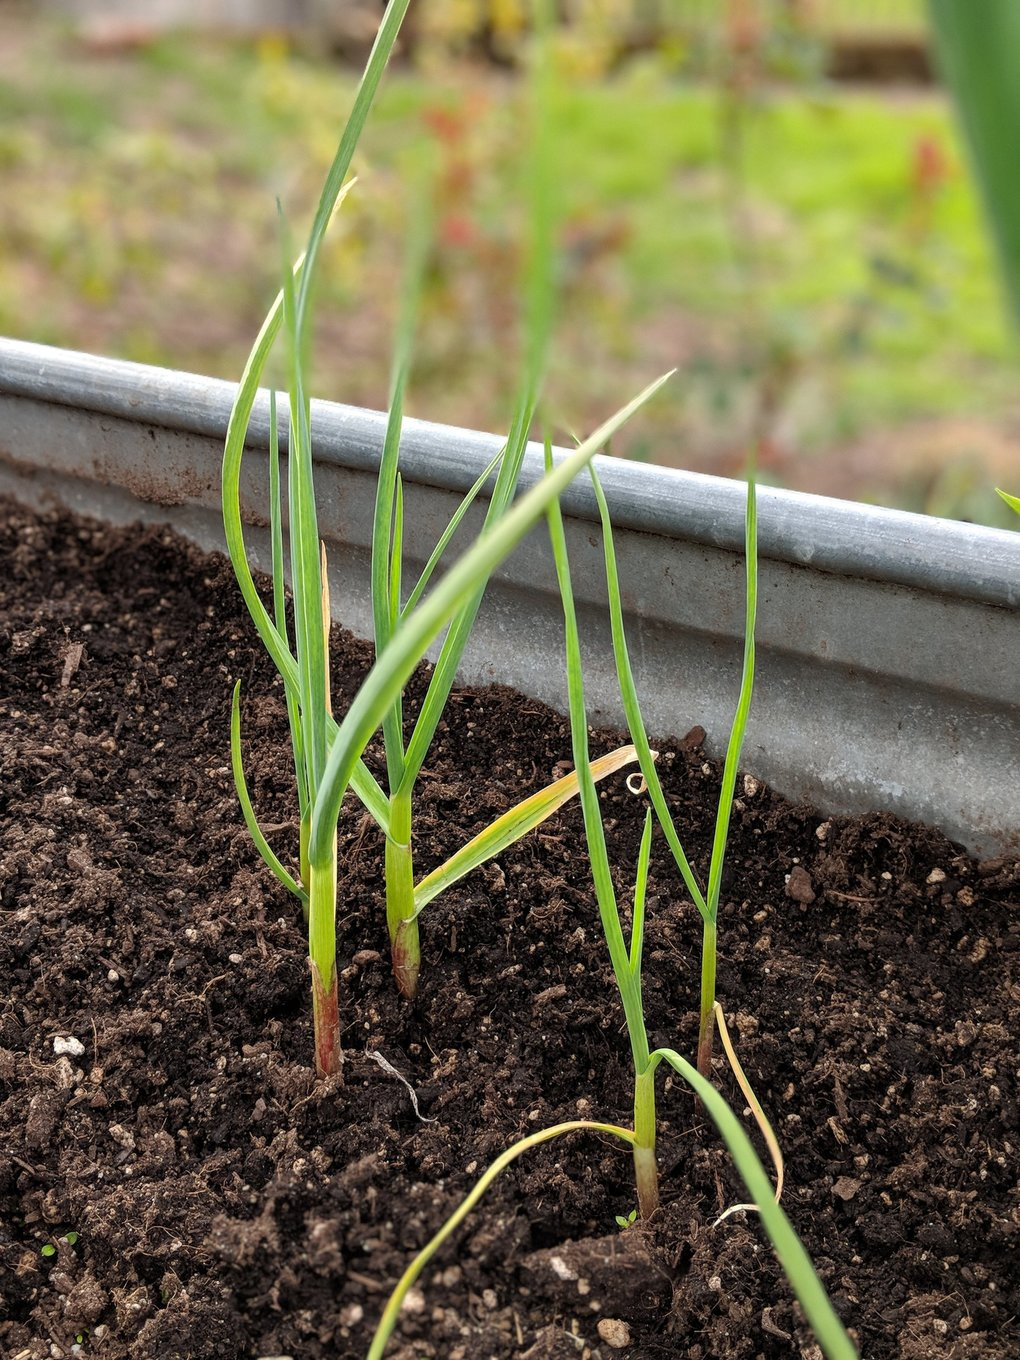 Hardneck varieties of garlic can be found at farmers markets in early fall. Plant each clove individually, and each will sprout a green stem called a garlic chive within a few weeks. This variety will produce garlic scapes in the spring.  (Jill Lightner / Special to The Seattle Times)